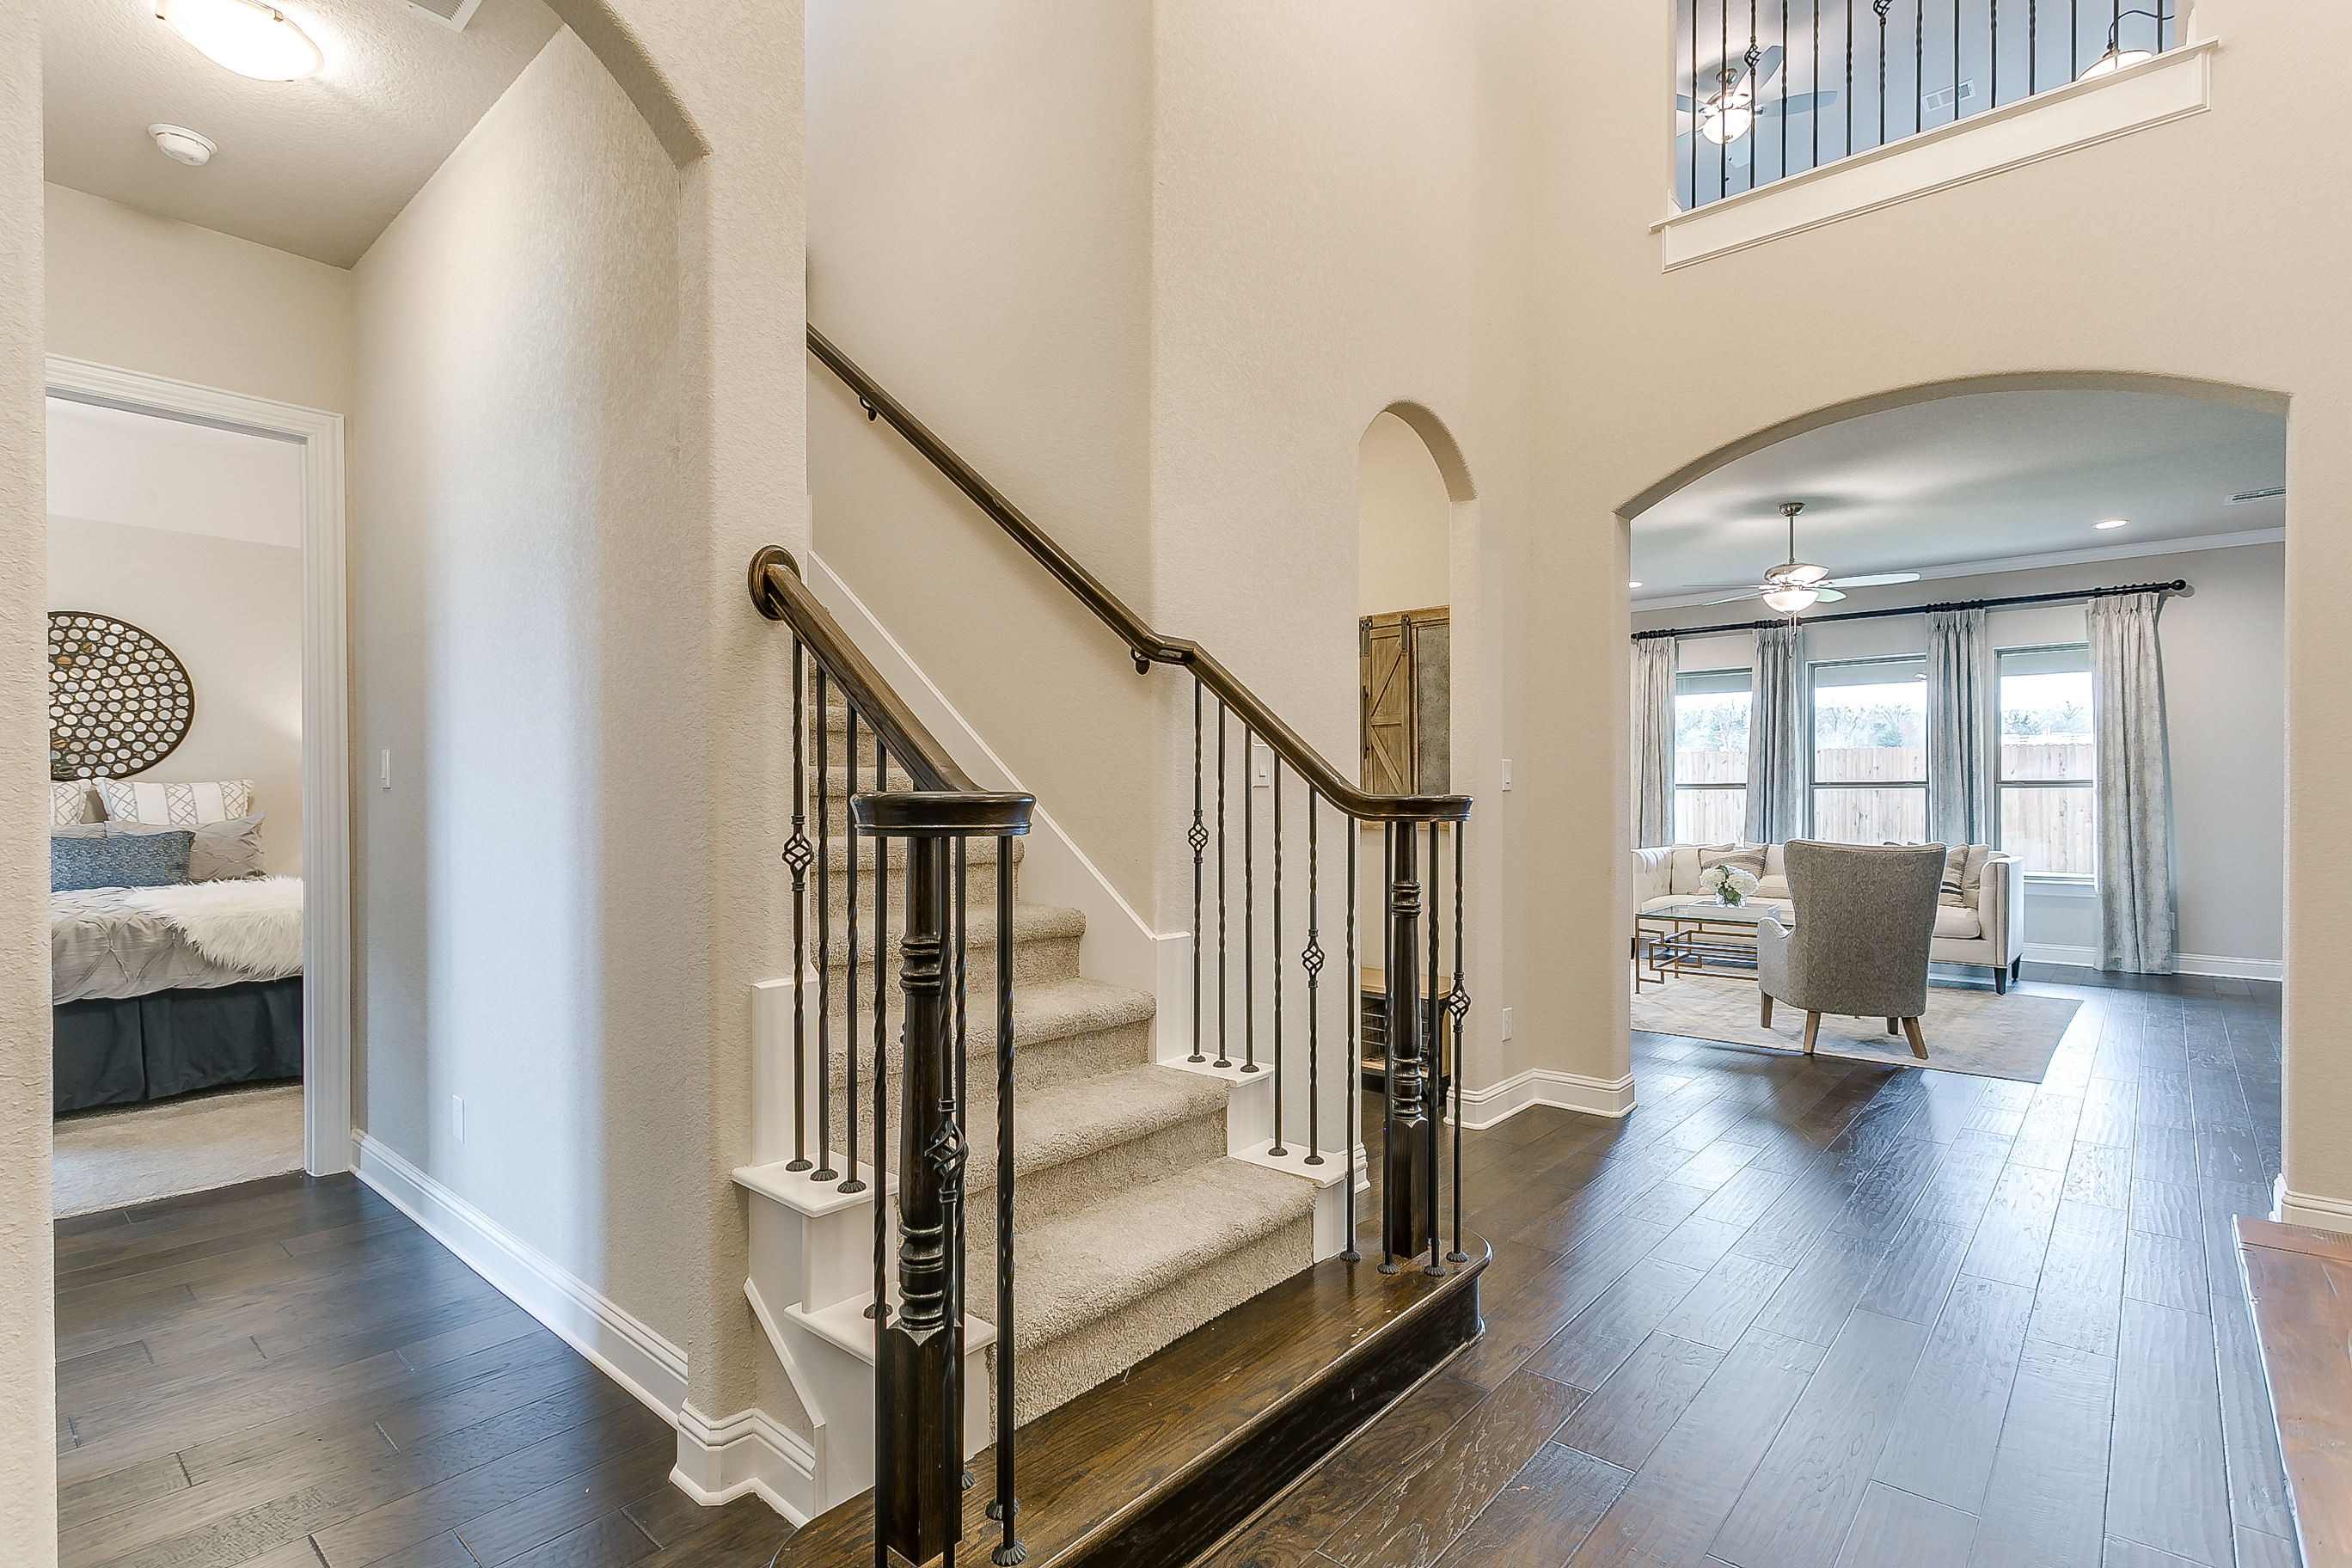 1913 Silver Falls  - New Home for Sale in Burleson - 6